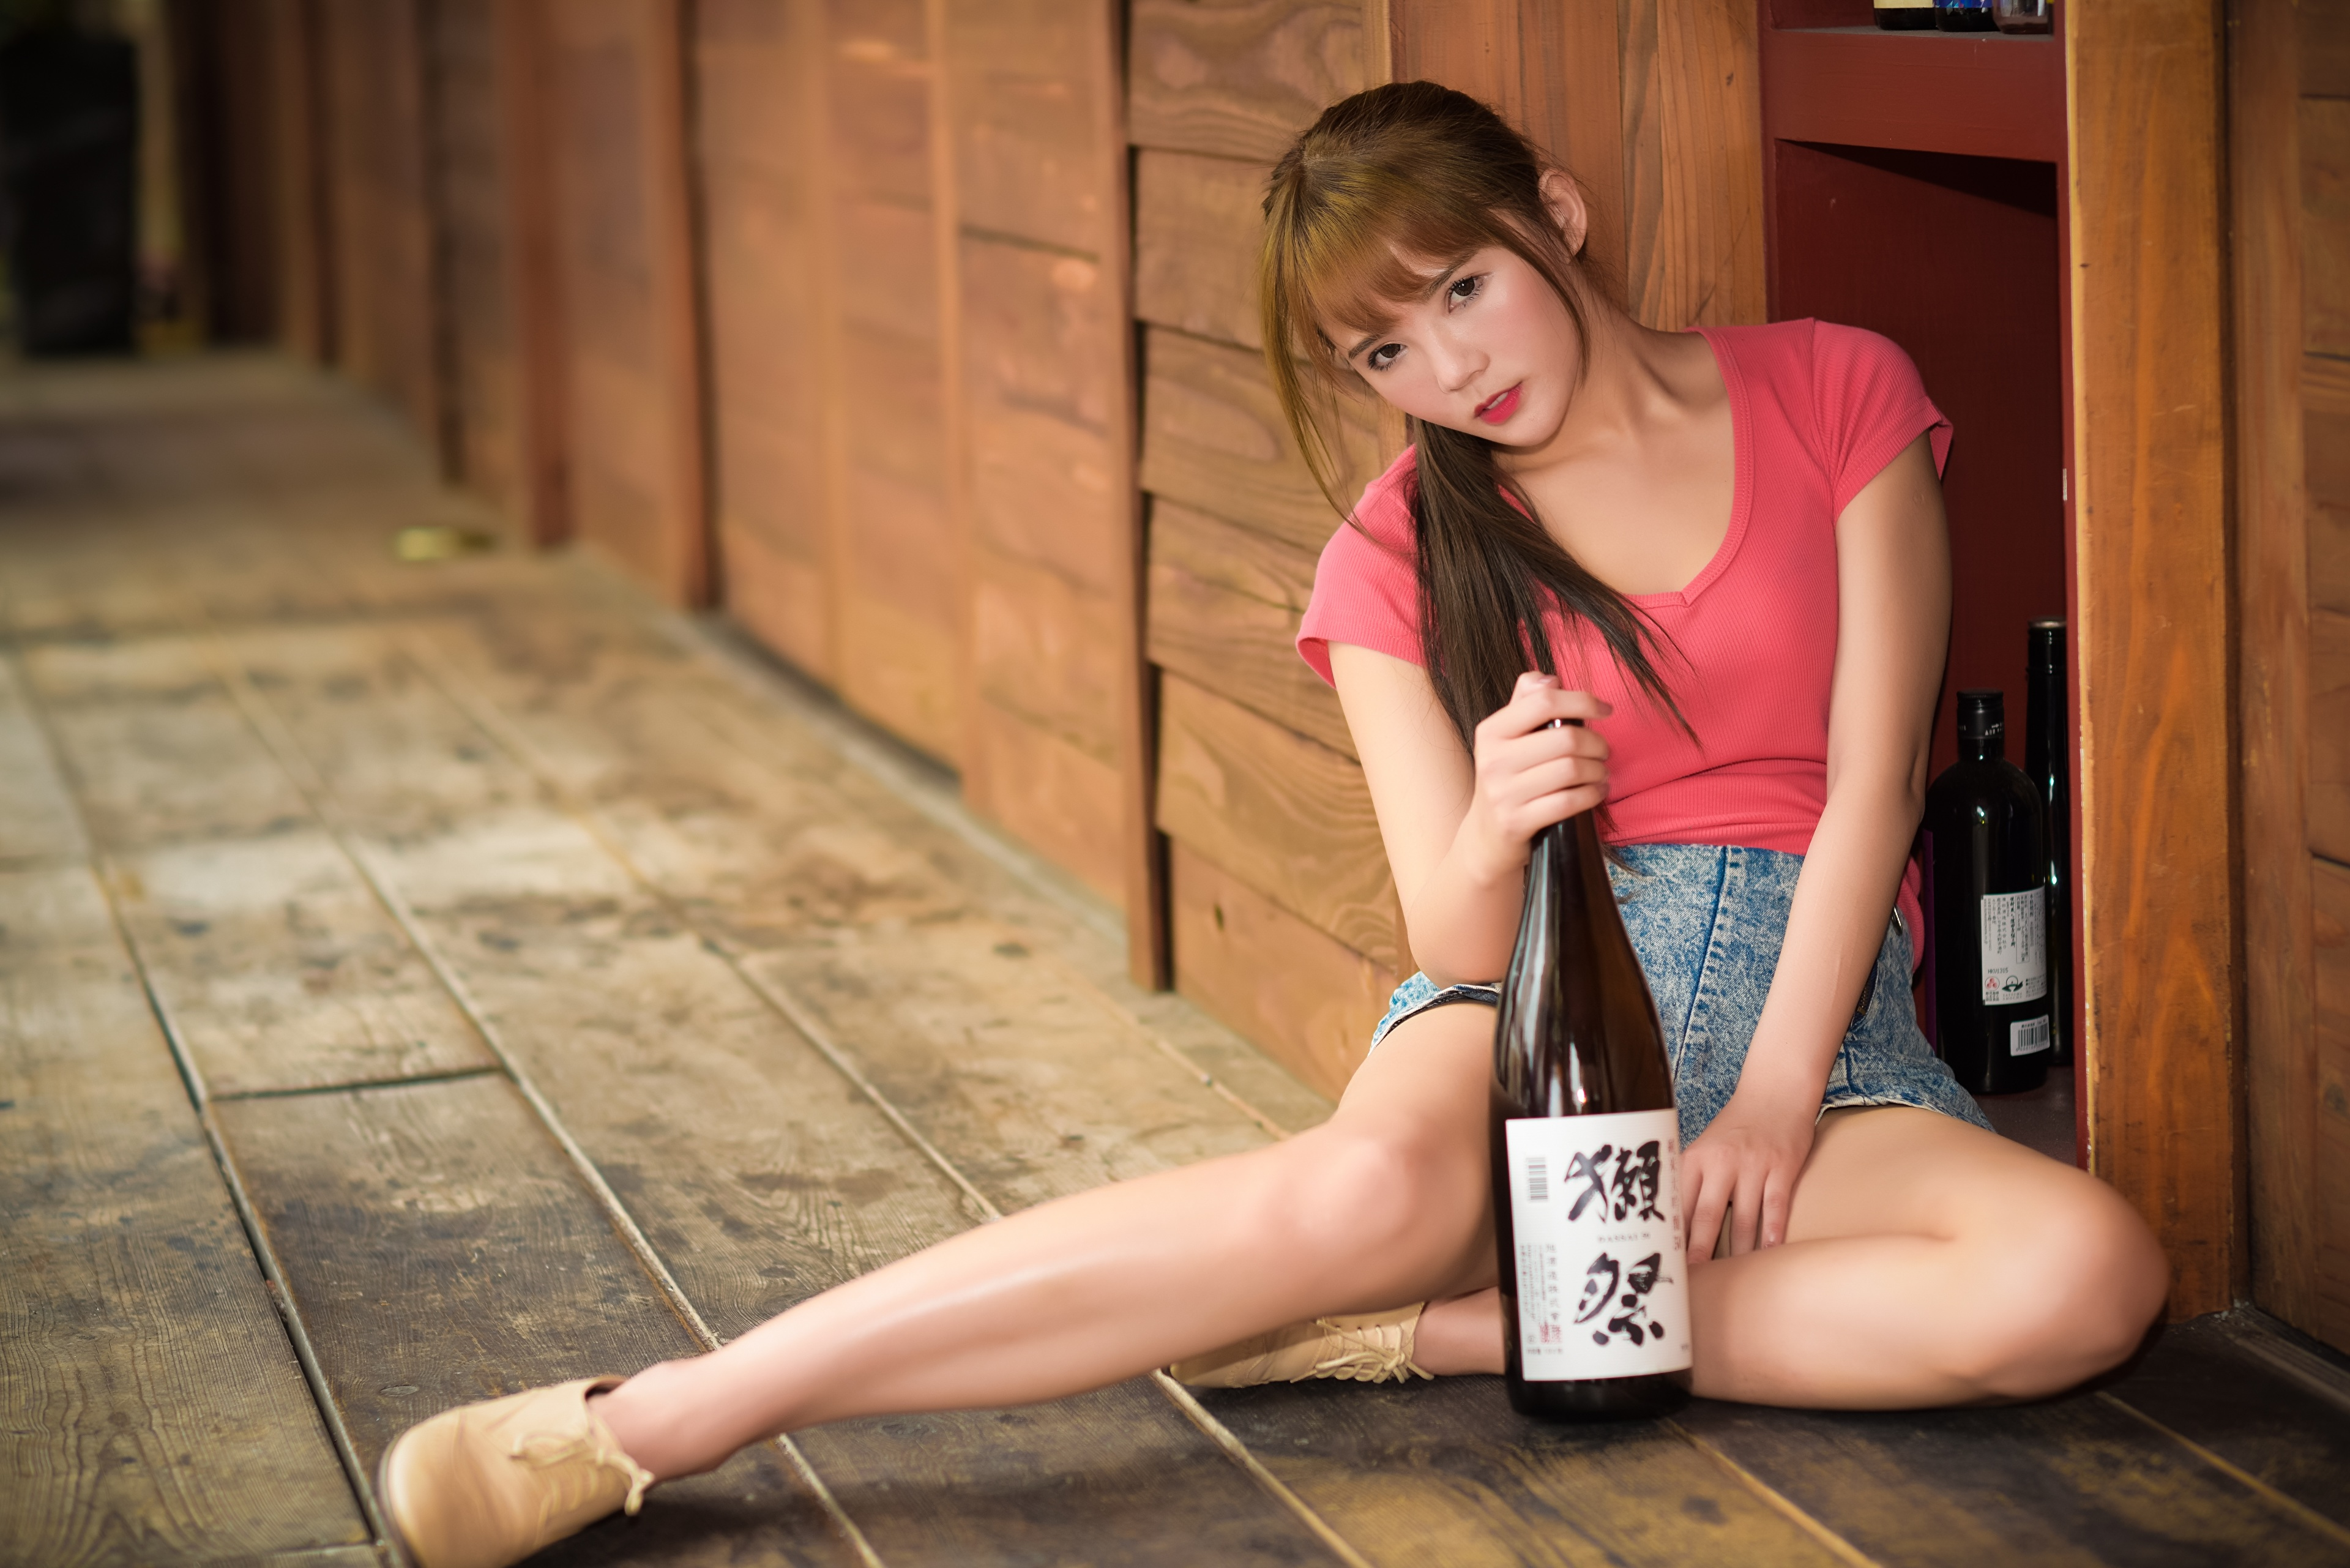 Image Brown haired Bokeh female Legs Asian Hands Bottle Sitting 3840x2563 blurred background Girls young woman Asiatic sit bottles